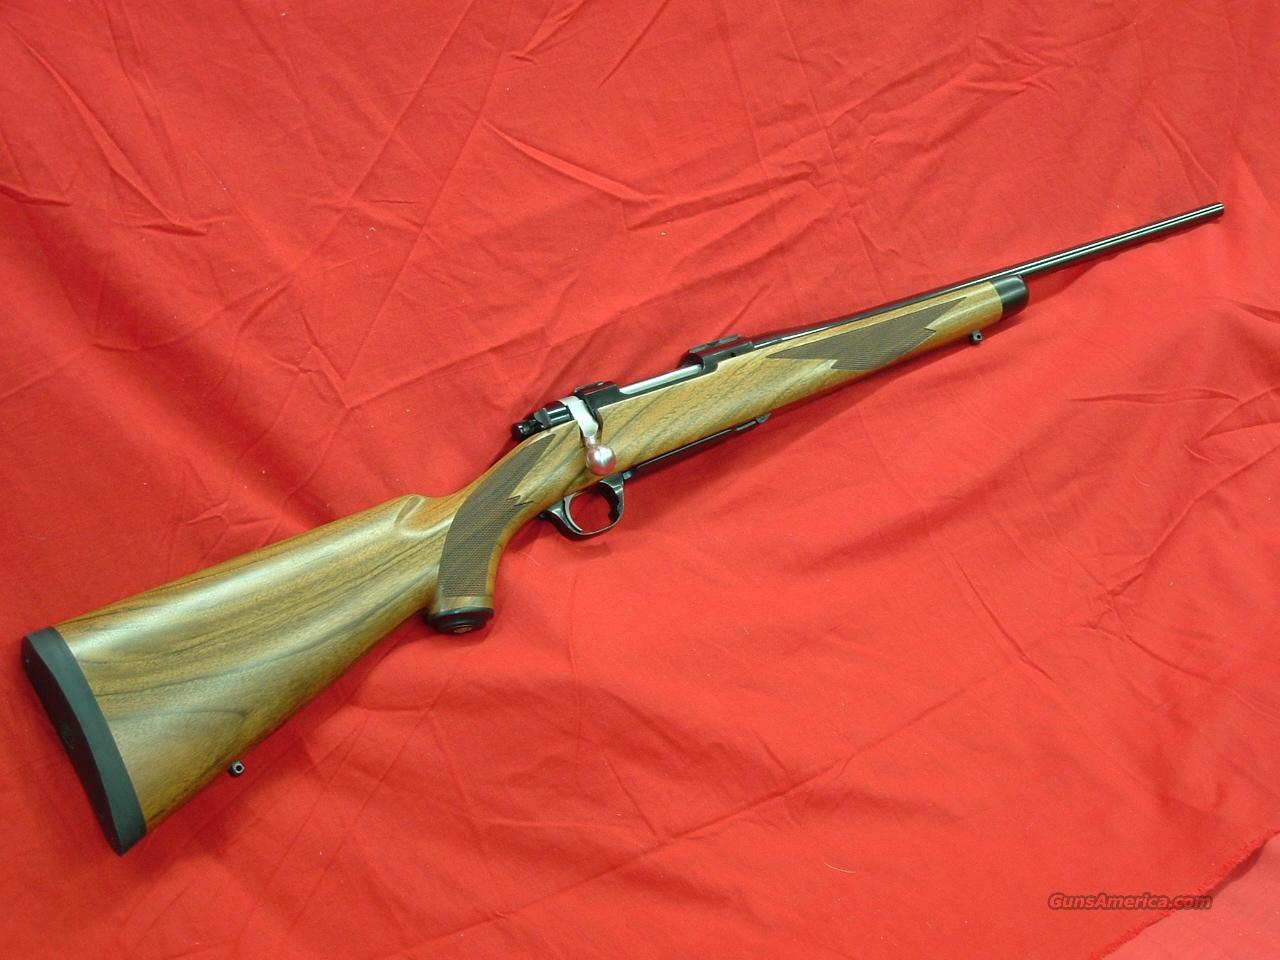 Ruger Mdl 77 UL MKII Circassian  Guns > Rifles > Ruger Rifles > Model 77